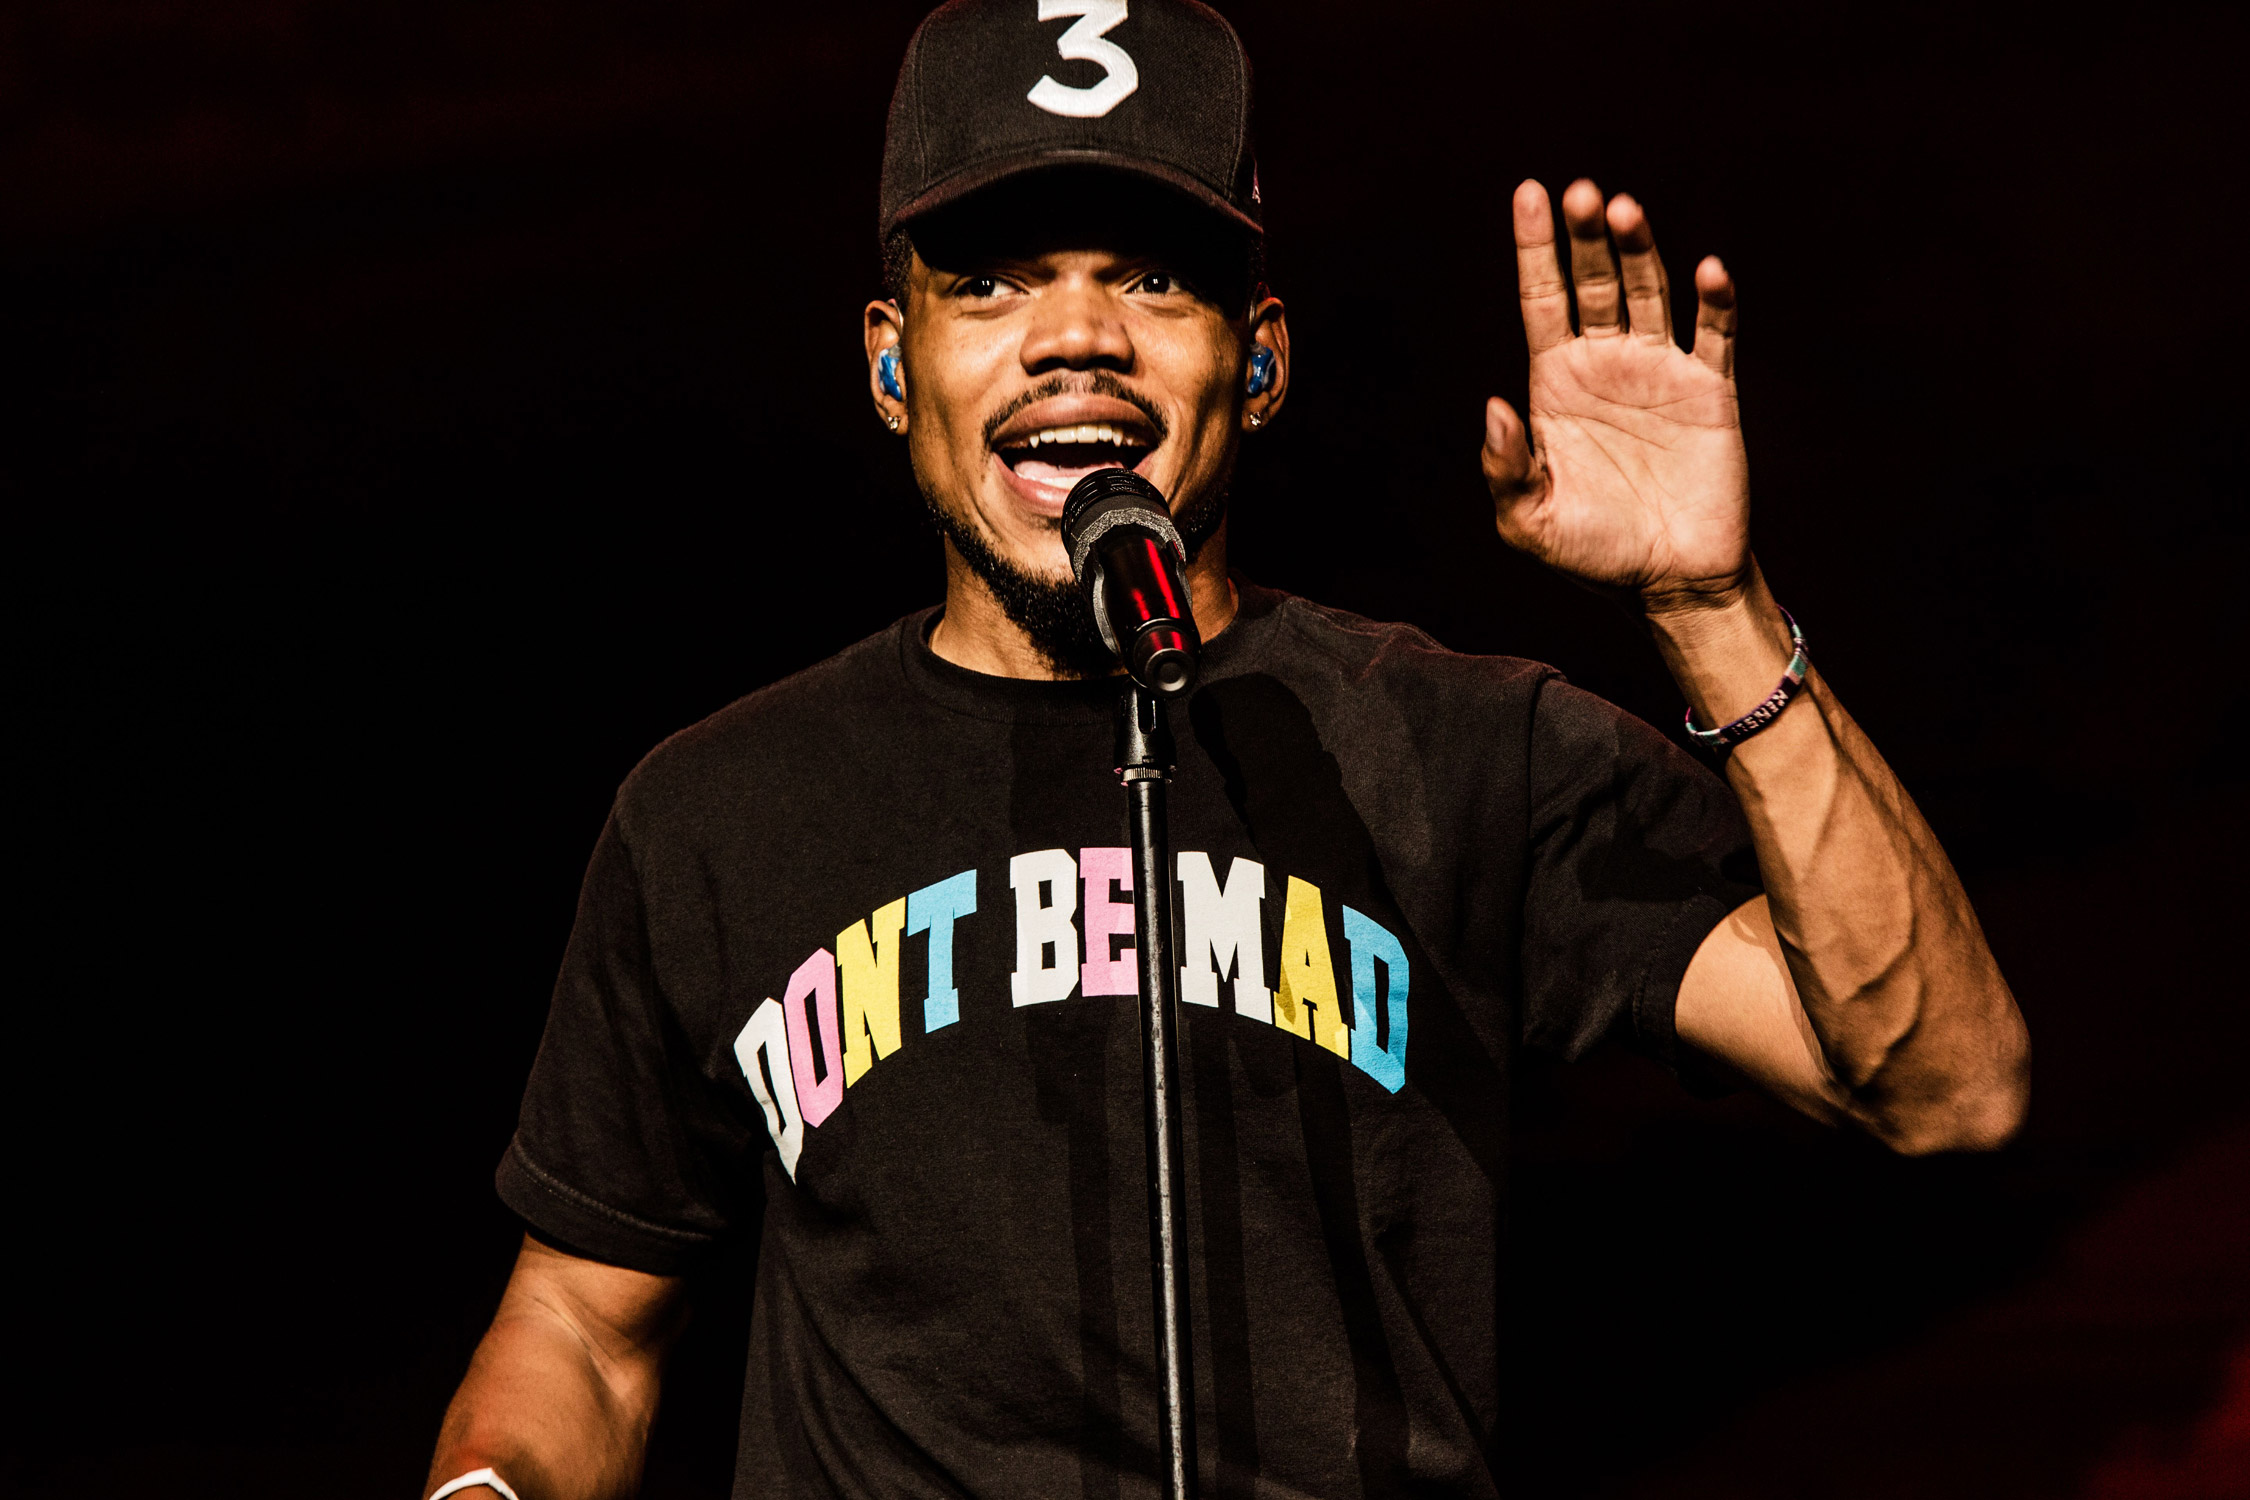 Chance the Rapper Doesn't Know the Term 'Dinosauria' Was Invented in 1842 and Describes 'Terrible Lizards'